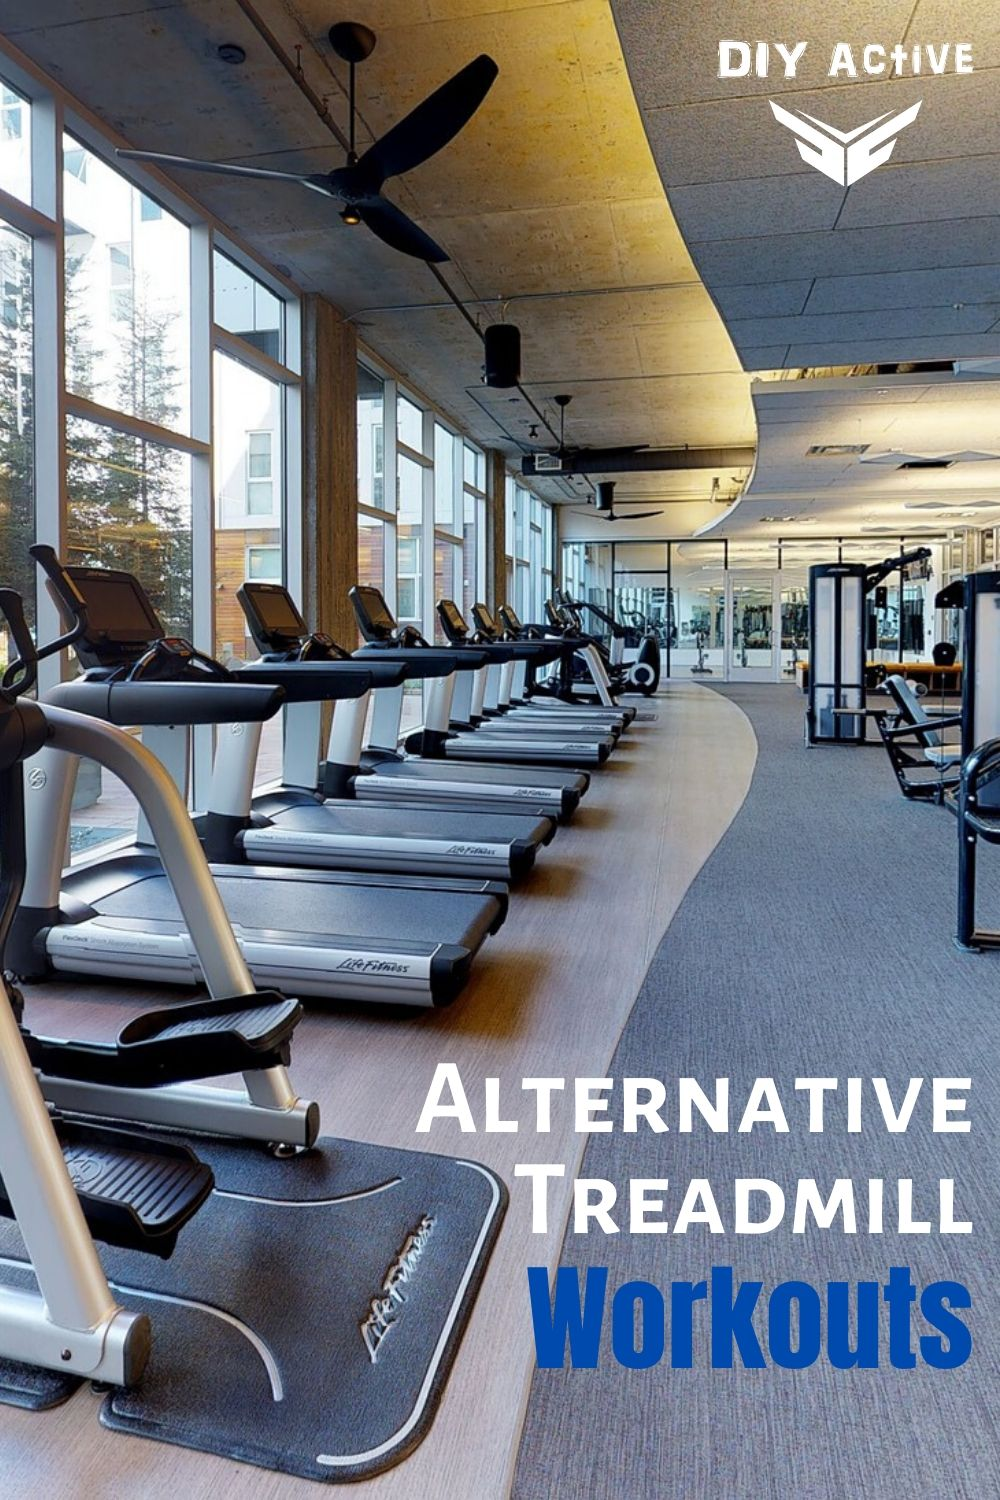 More Than Walking Alternative Treadmill Workouts Try Today